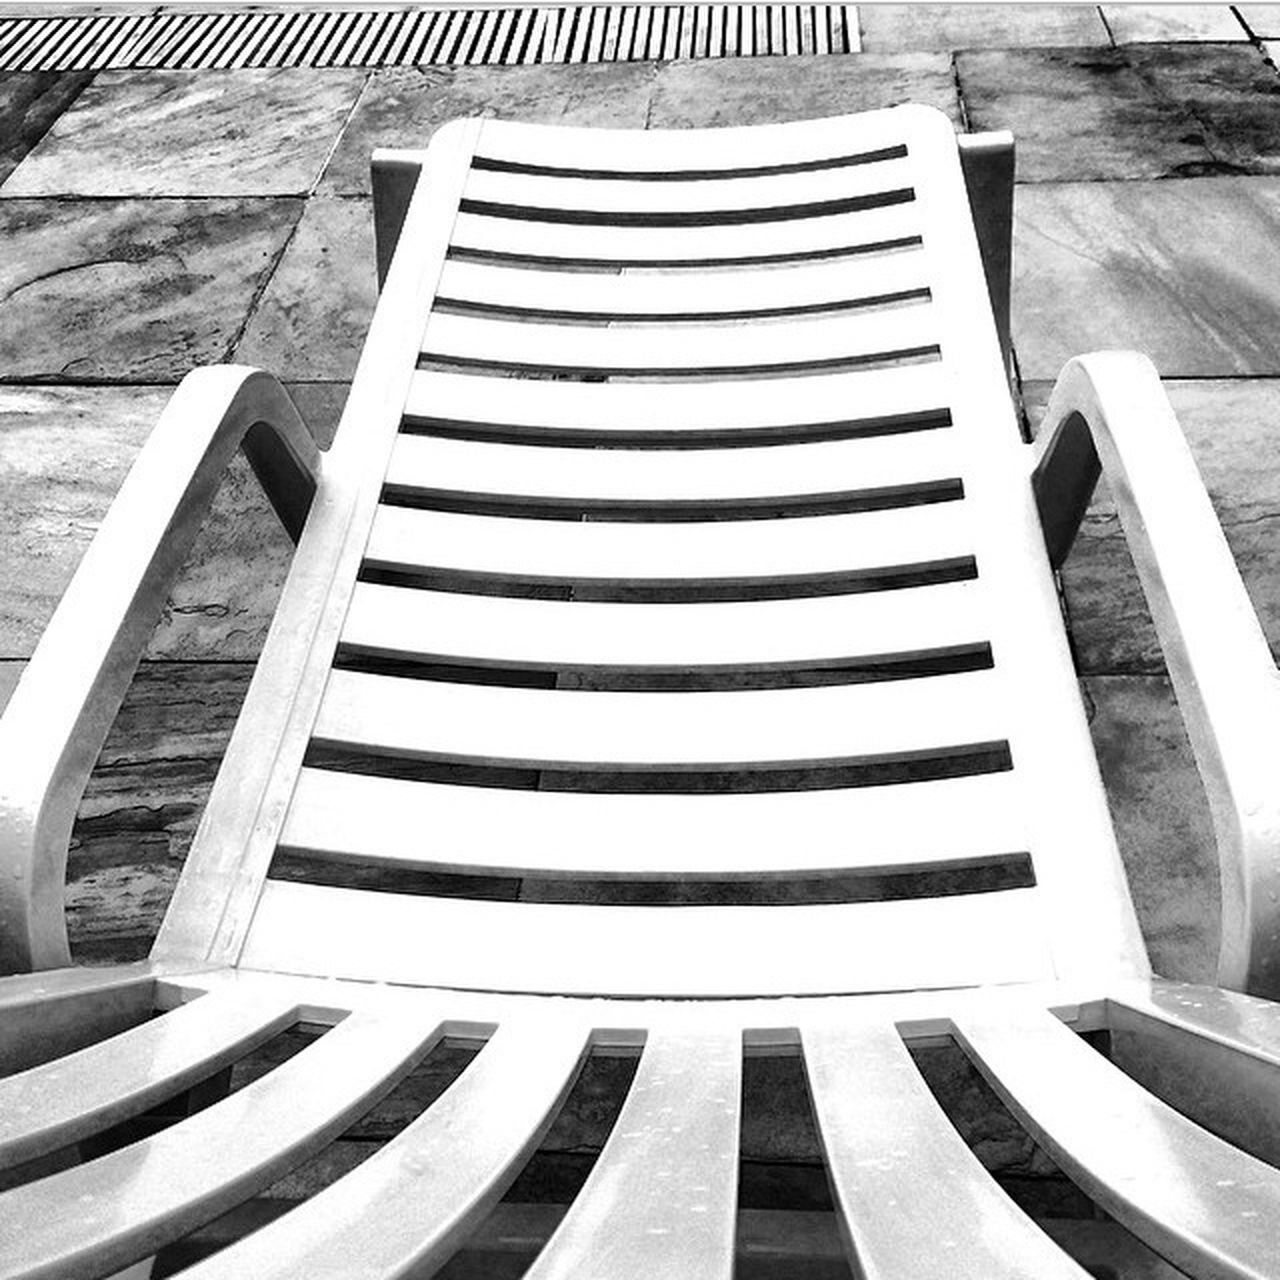 wood - material, striped, steps, high angle view, day, pattern, no people, outdoors, close-up